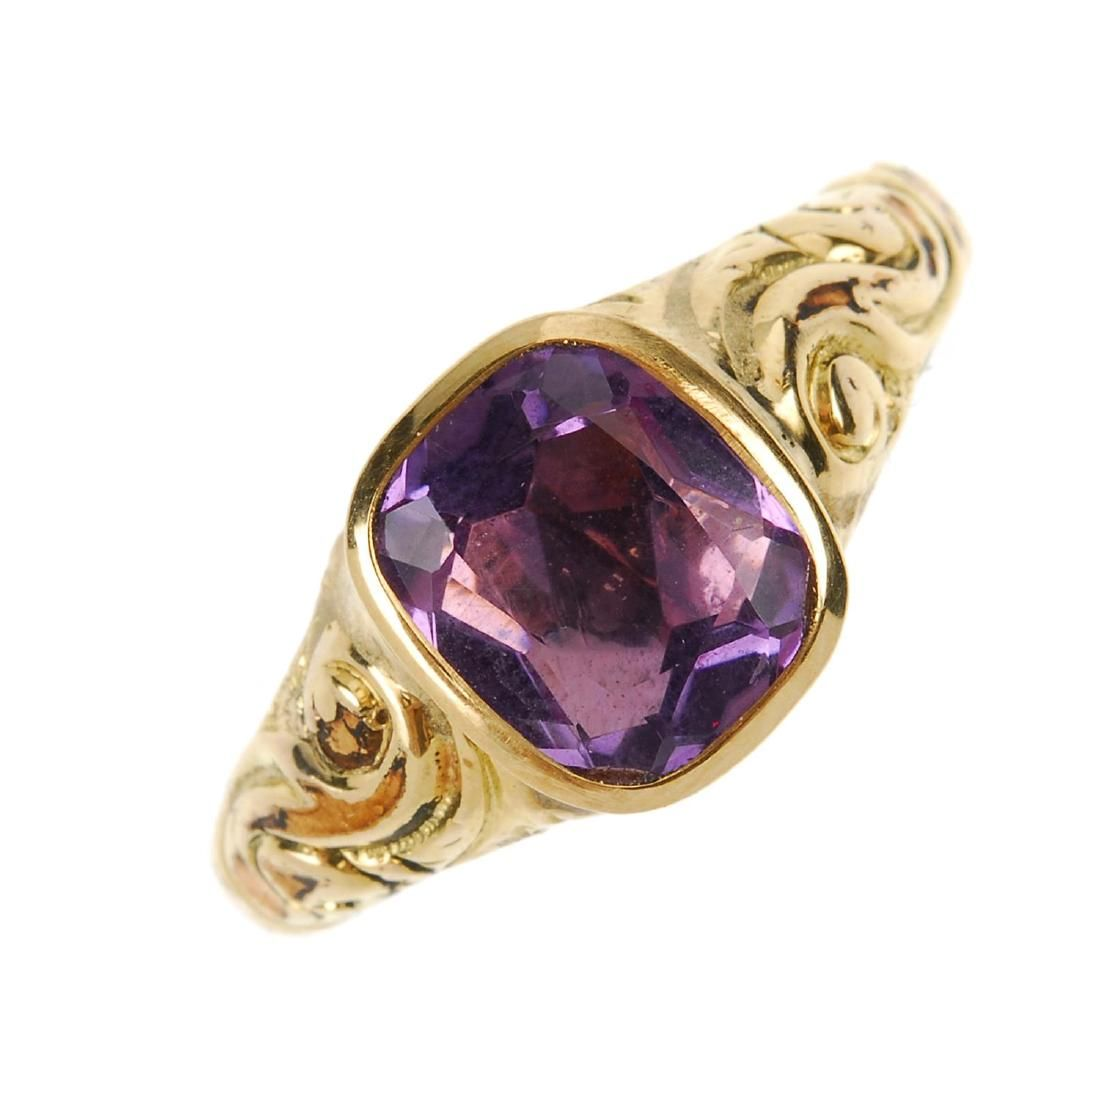 A late Victorian 9ct gold amethyst ring. The